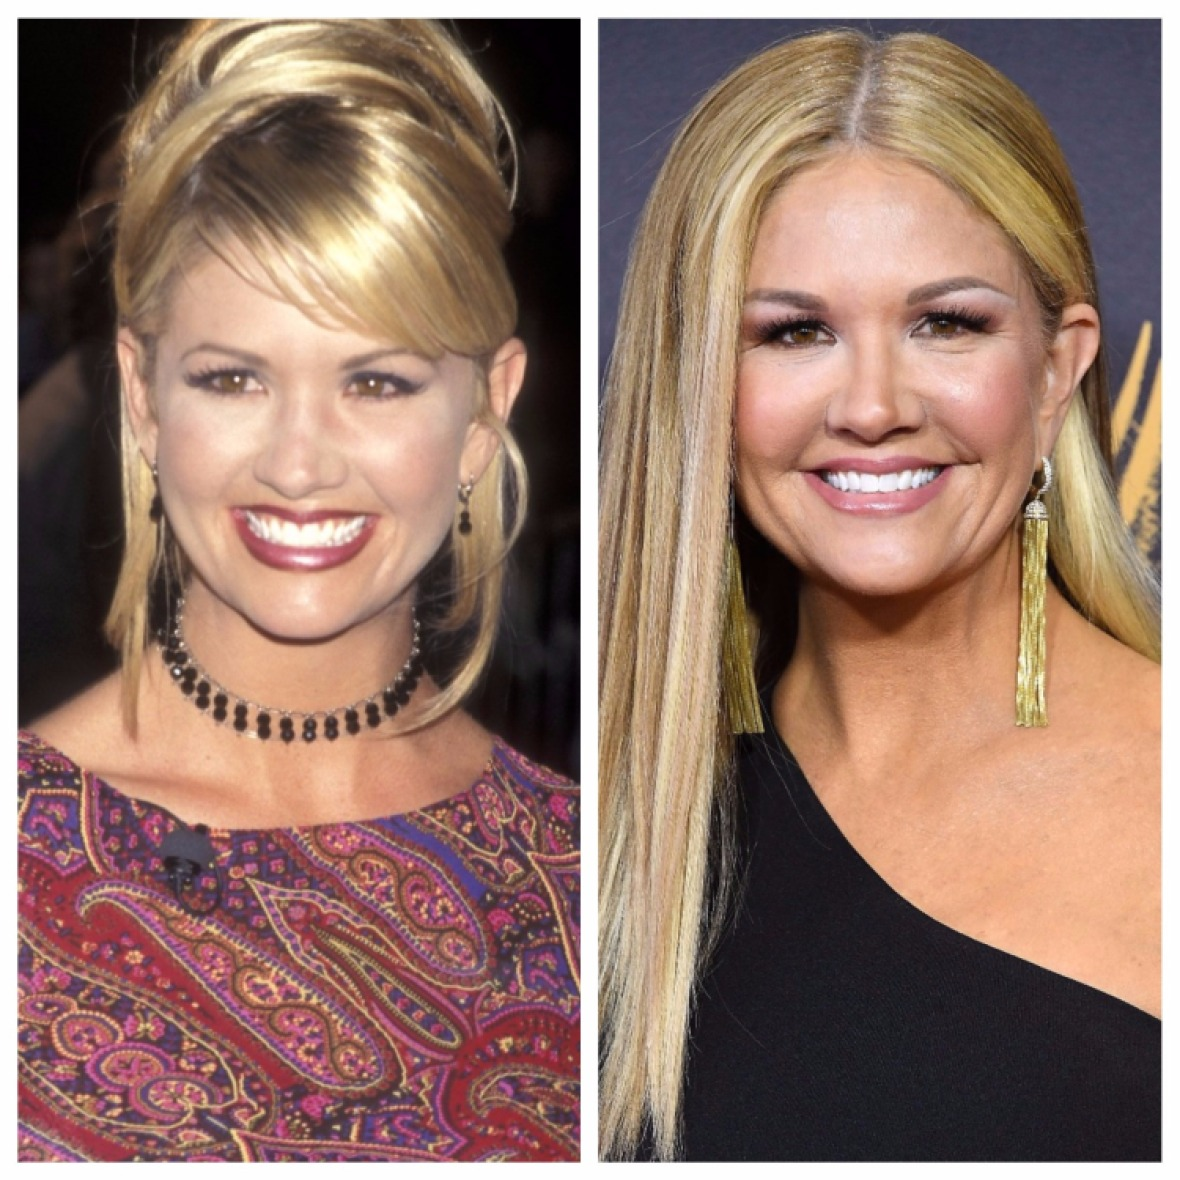 nancy o'dell then & now getty images